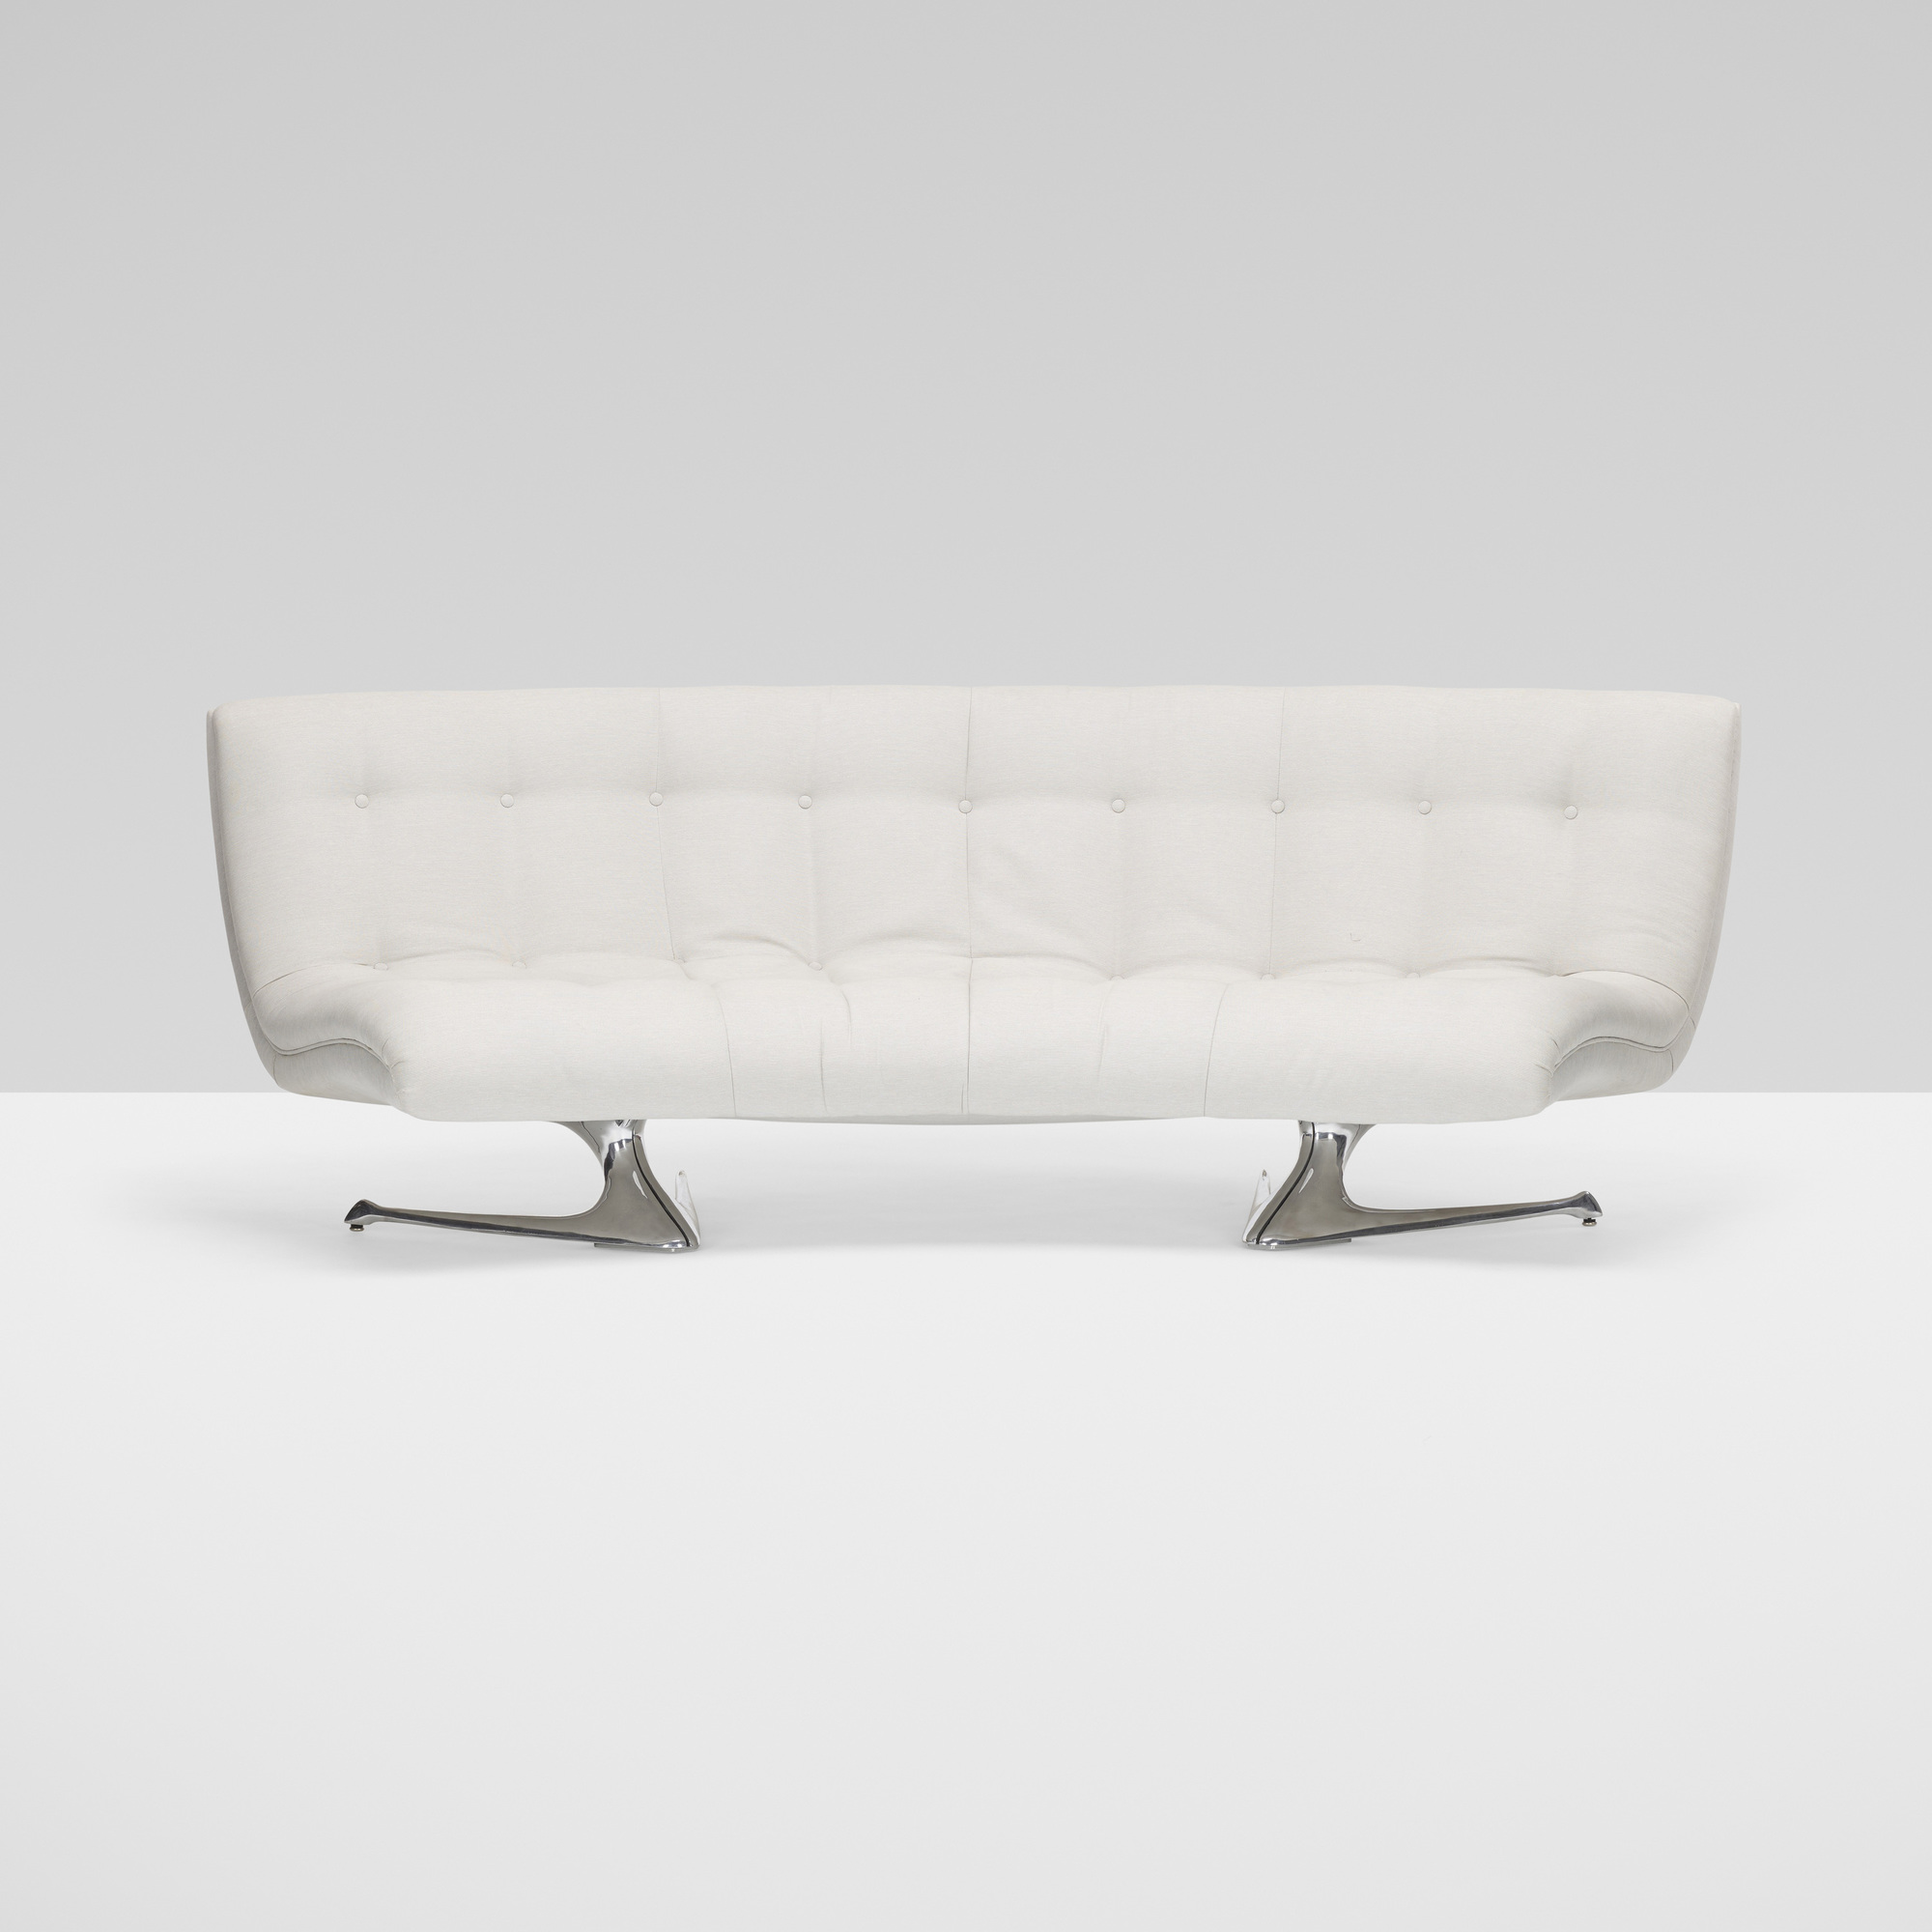 408: Vladimir Kagan / Unicorn sofa (2 of 4)